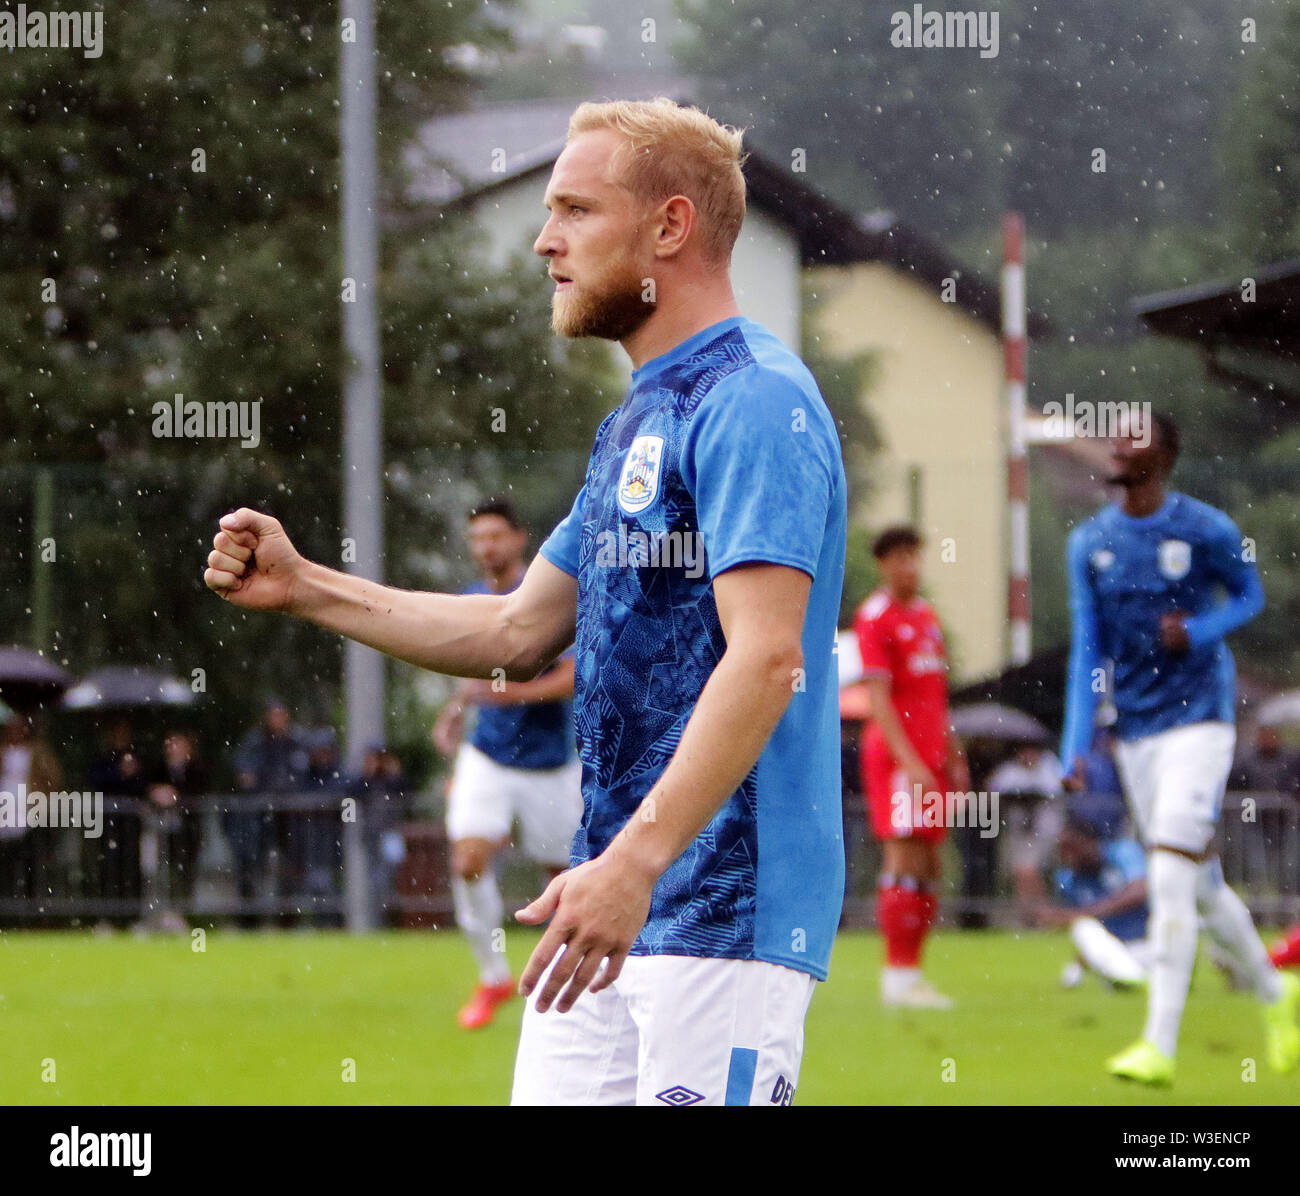 July 13, 2019 - Kitzbuehel, Austria - Alex PRICHART (Huddersfield),  celebrates the  goal in the rain,.pre season friendly 2019/20, .Huddersfield Town FC vs Hamburger SV,.Stadion Kitzbuehel/Austria, July 13, 2019, .Huddersfield Town, the relegated team of the Premiere League wins in a pre season friendly against the former German champion Hamburger SV. (Credit Image: © Wolfgang Fehrmann/ZUMA Wire) - Stock Image